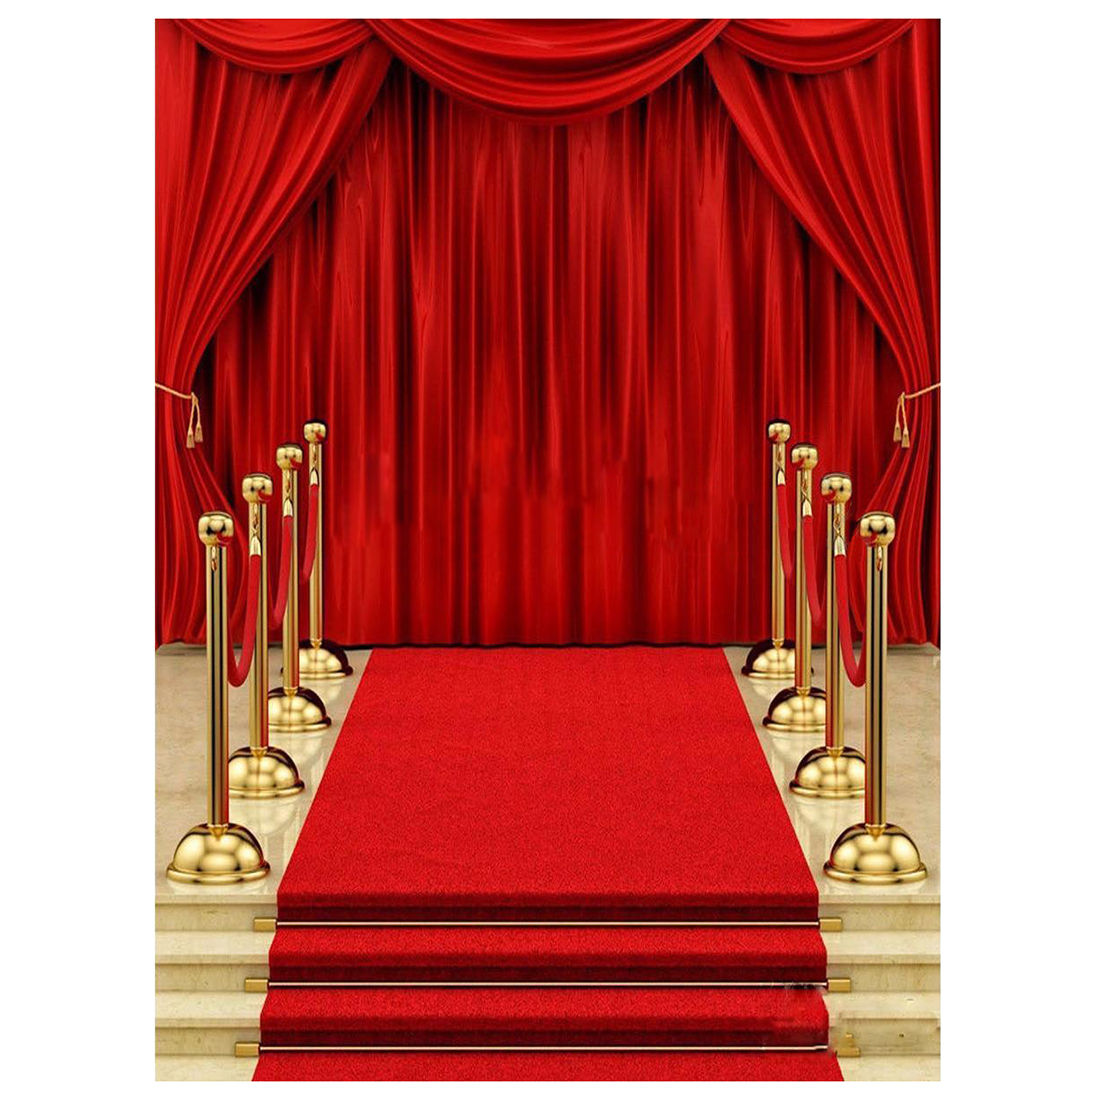 5x7ft vinyl red carpet curtain backdrop studio photography for Background curtain decoration